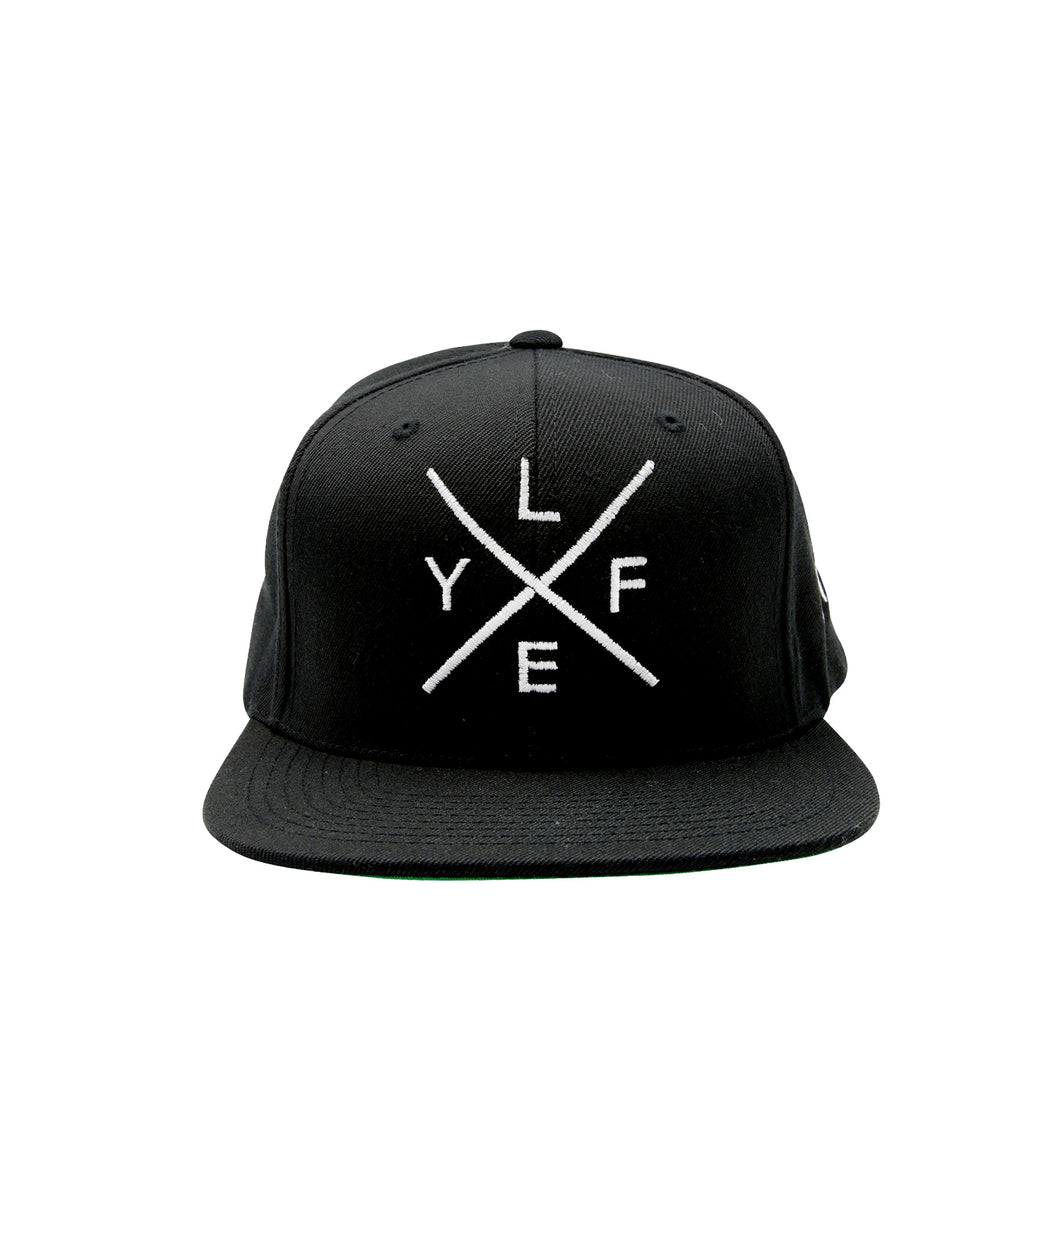 LYFE Cross Snapback Hat